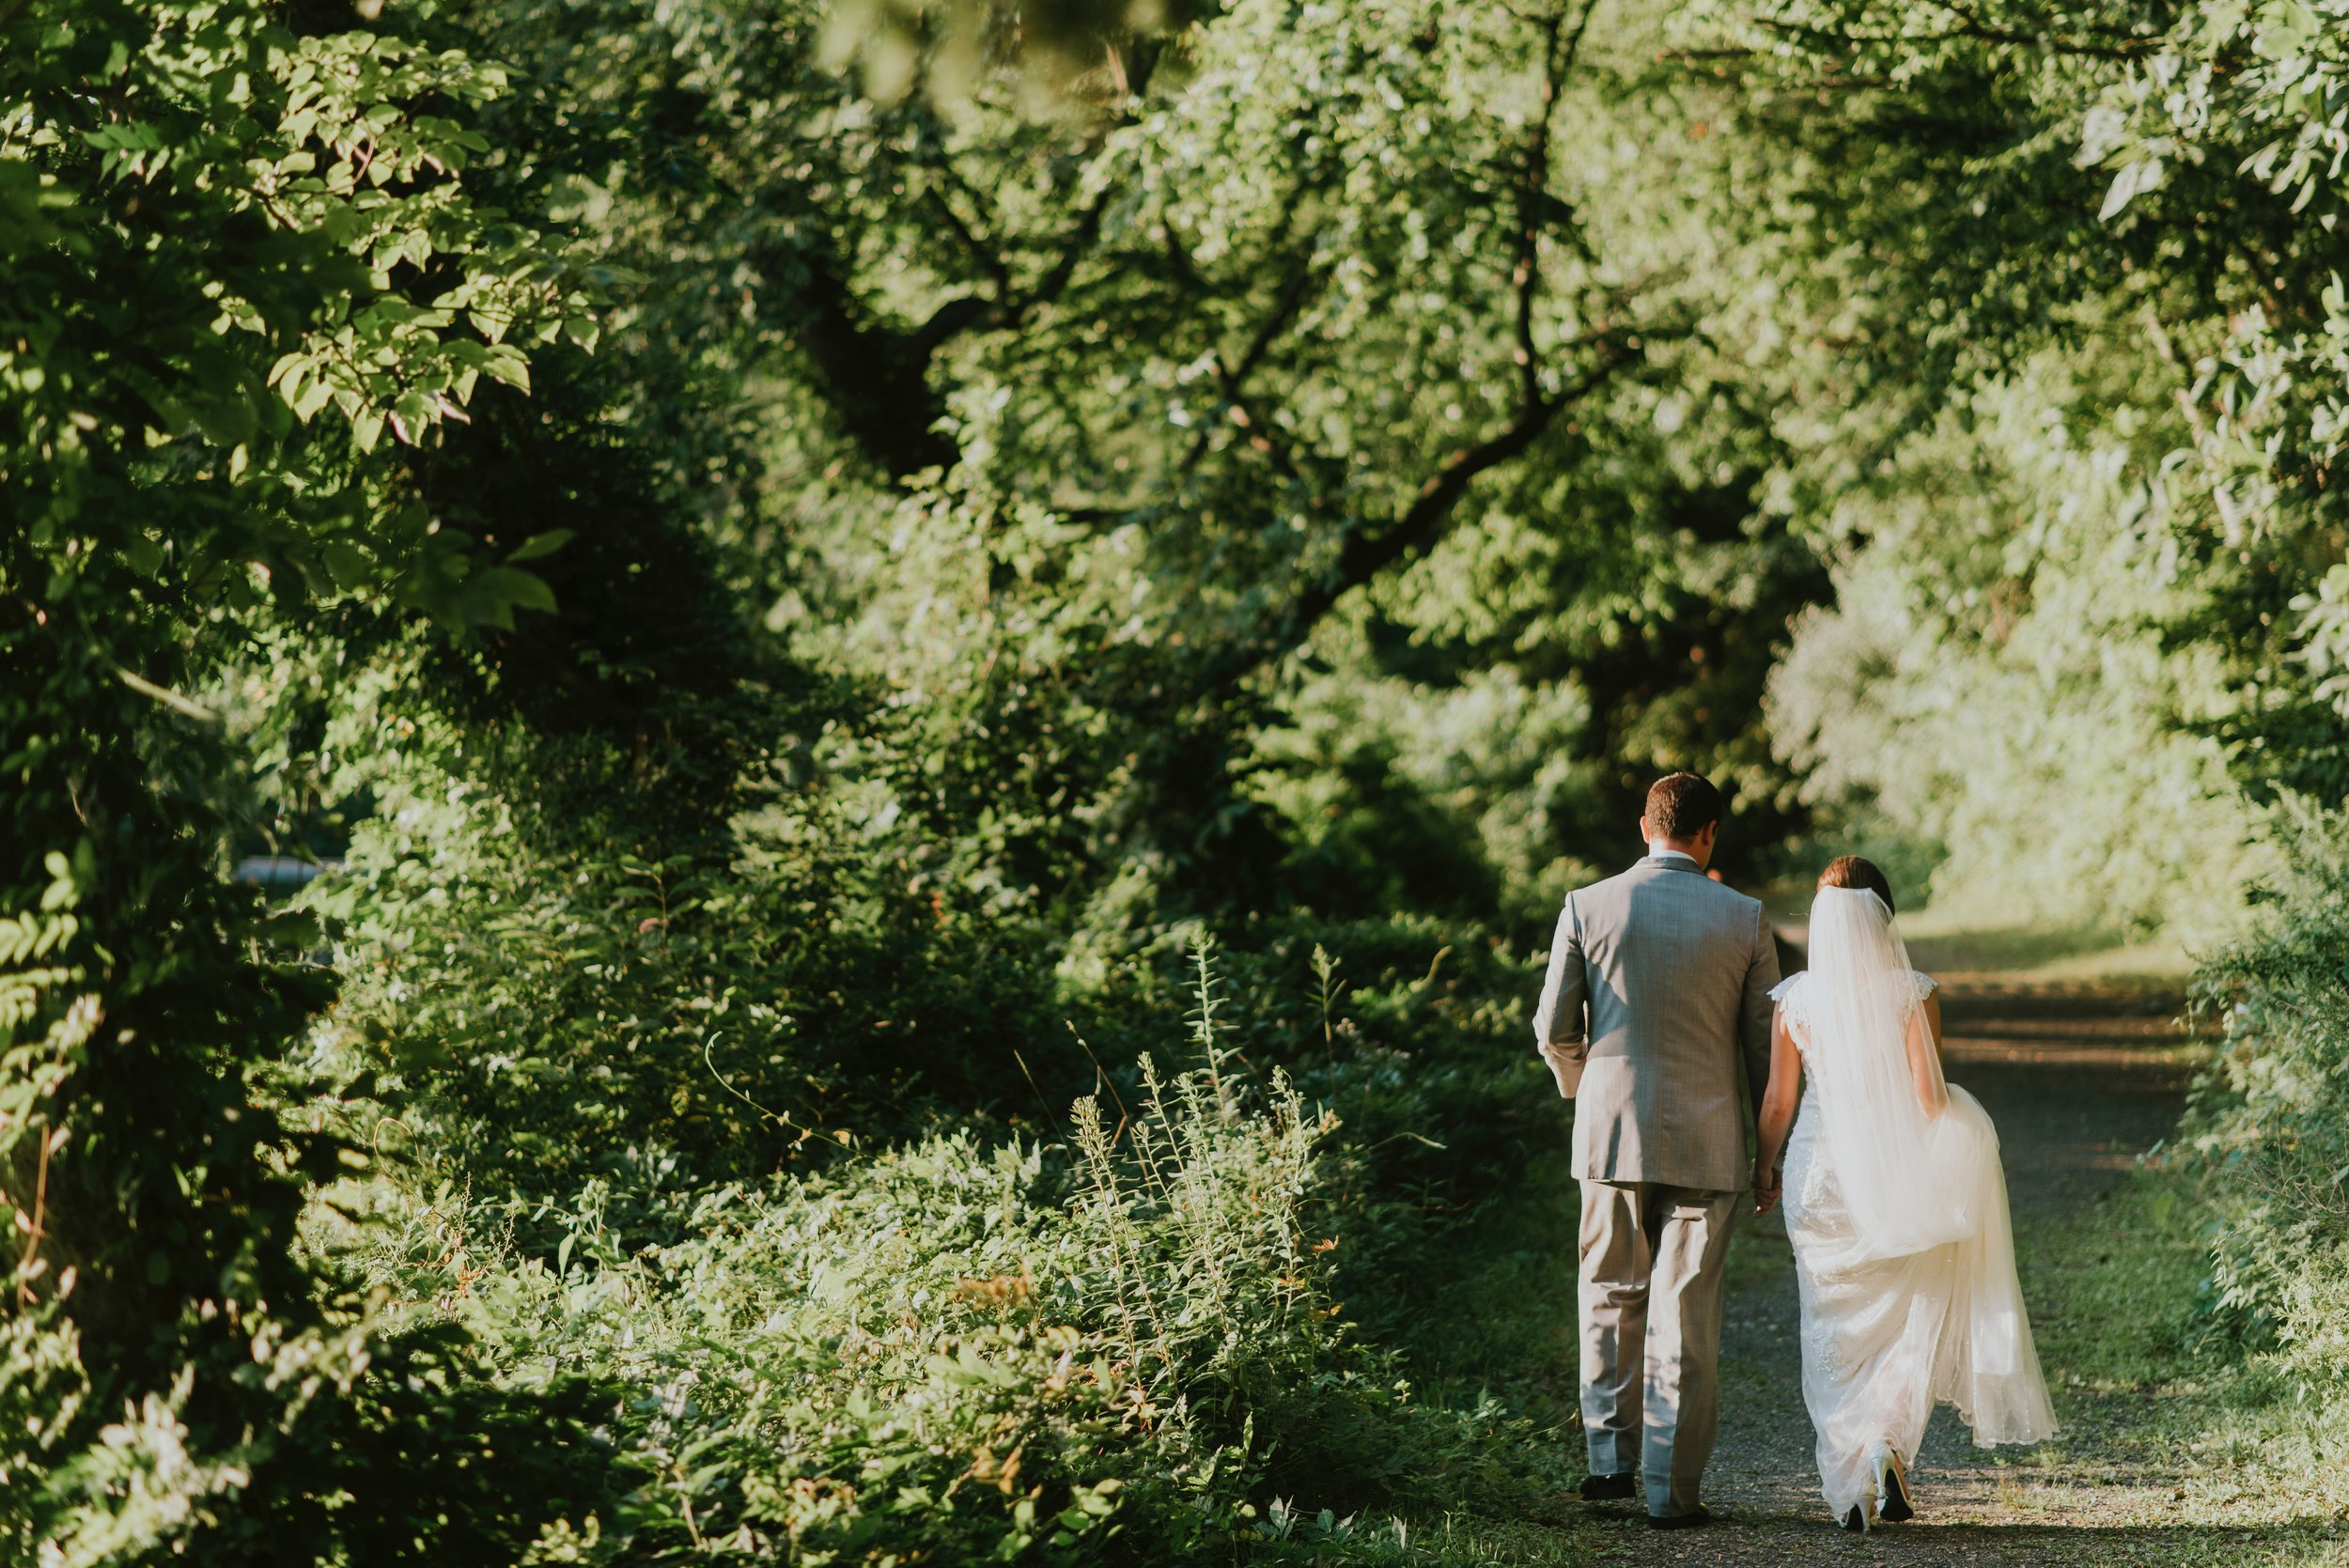 Woodland weddings are on the rise...